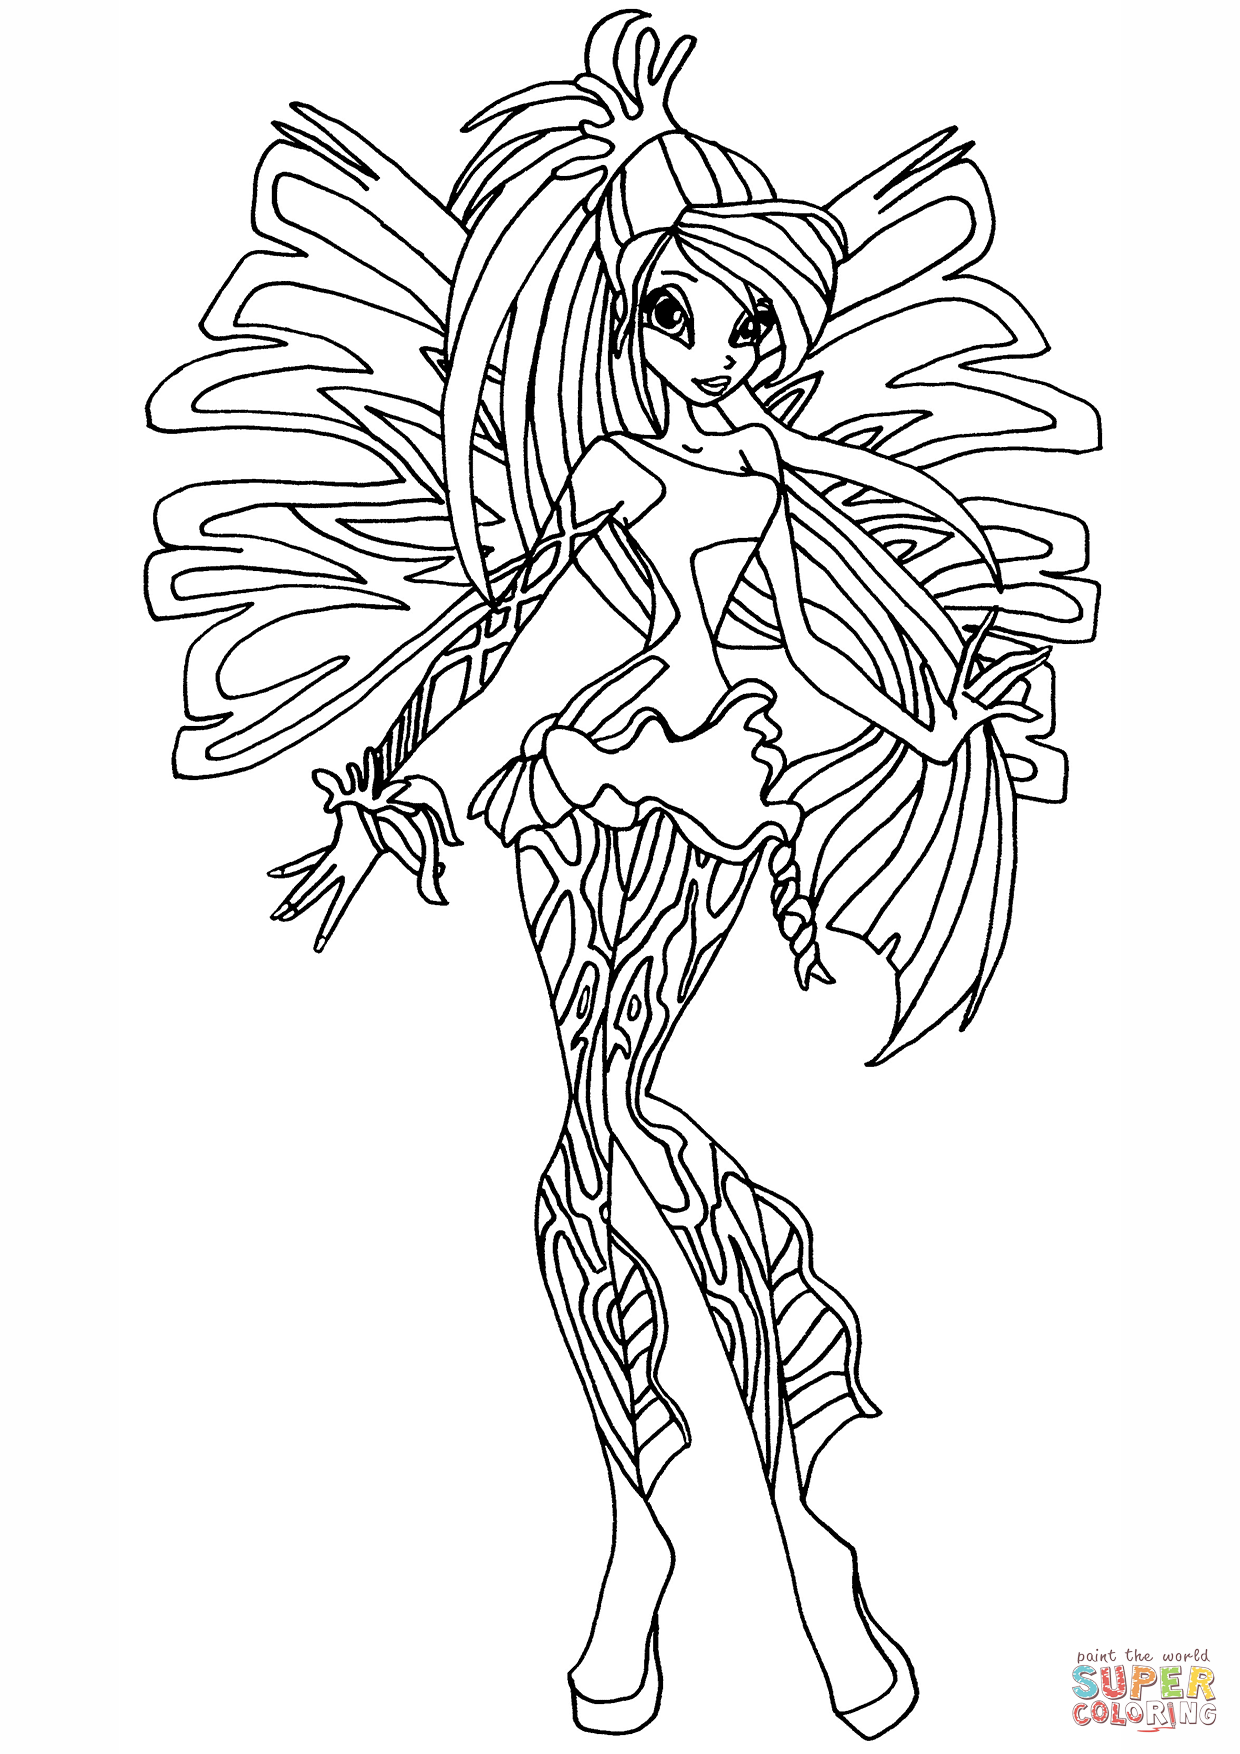 1240x1754 Winx Club Sirenix Bloom Coloring Page Free Printable Coloring